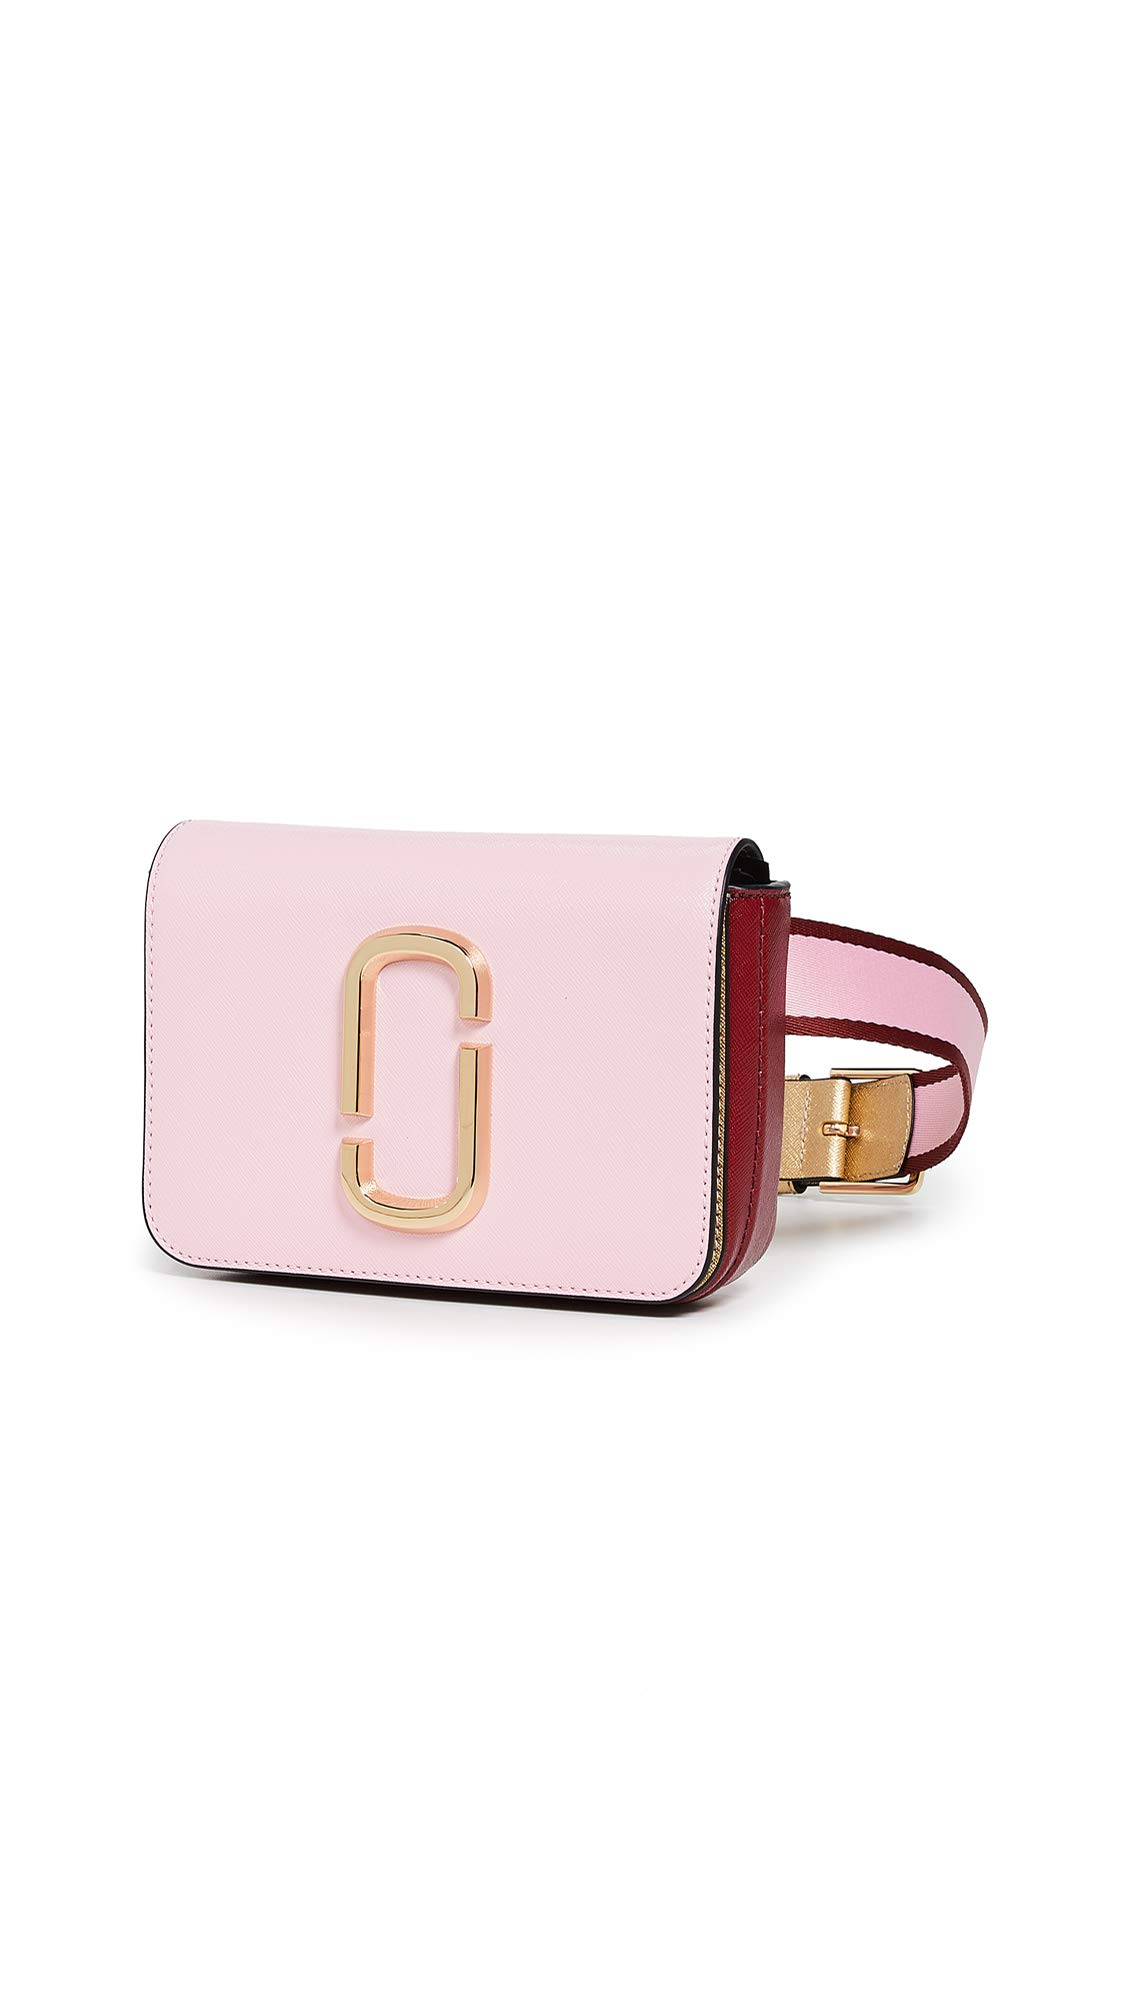 Marc Jacobs Women's XS/S Hip Shot Convertible Belt Bag, Pink/Red, One Size